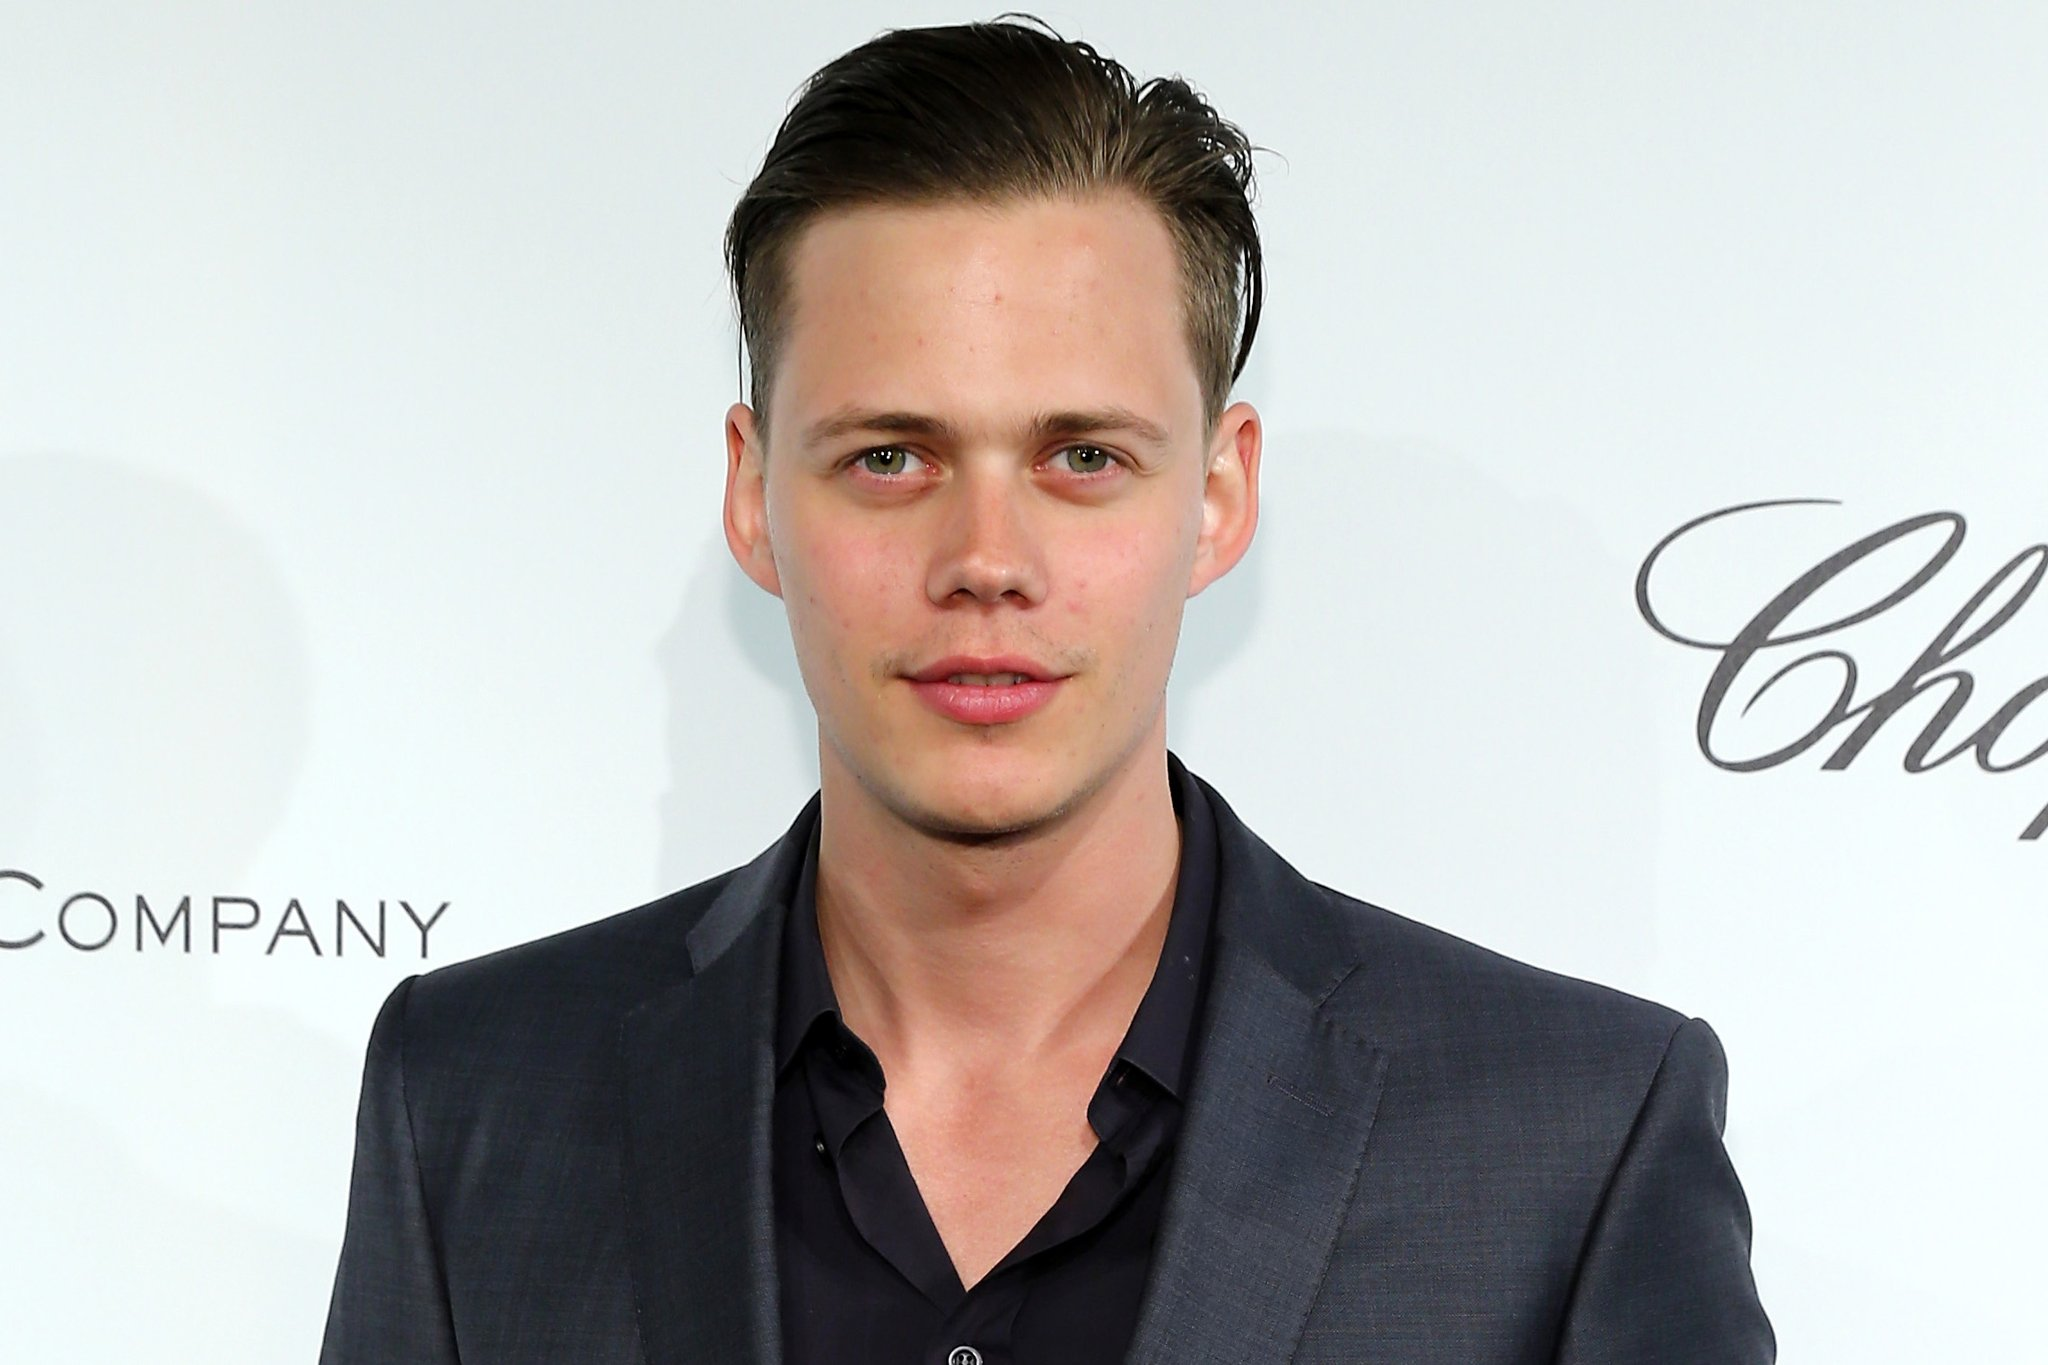 Meet Bill Skarsgard, the Guy About to Terrorize You as Pennywise